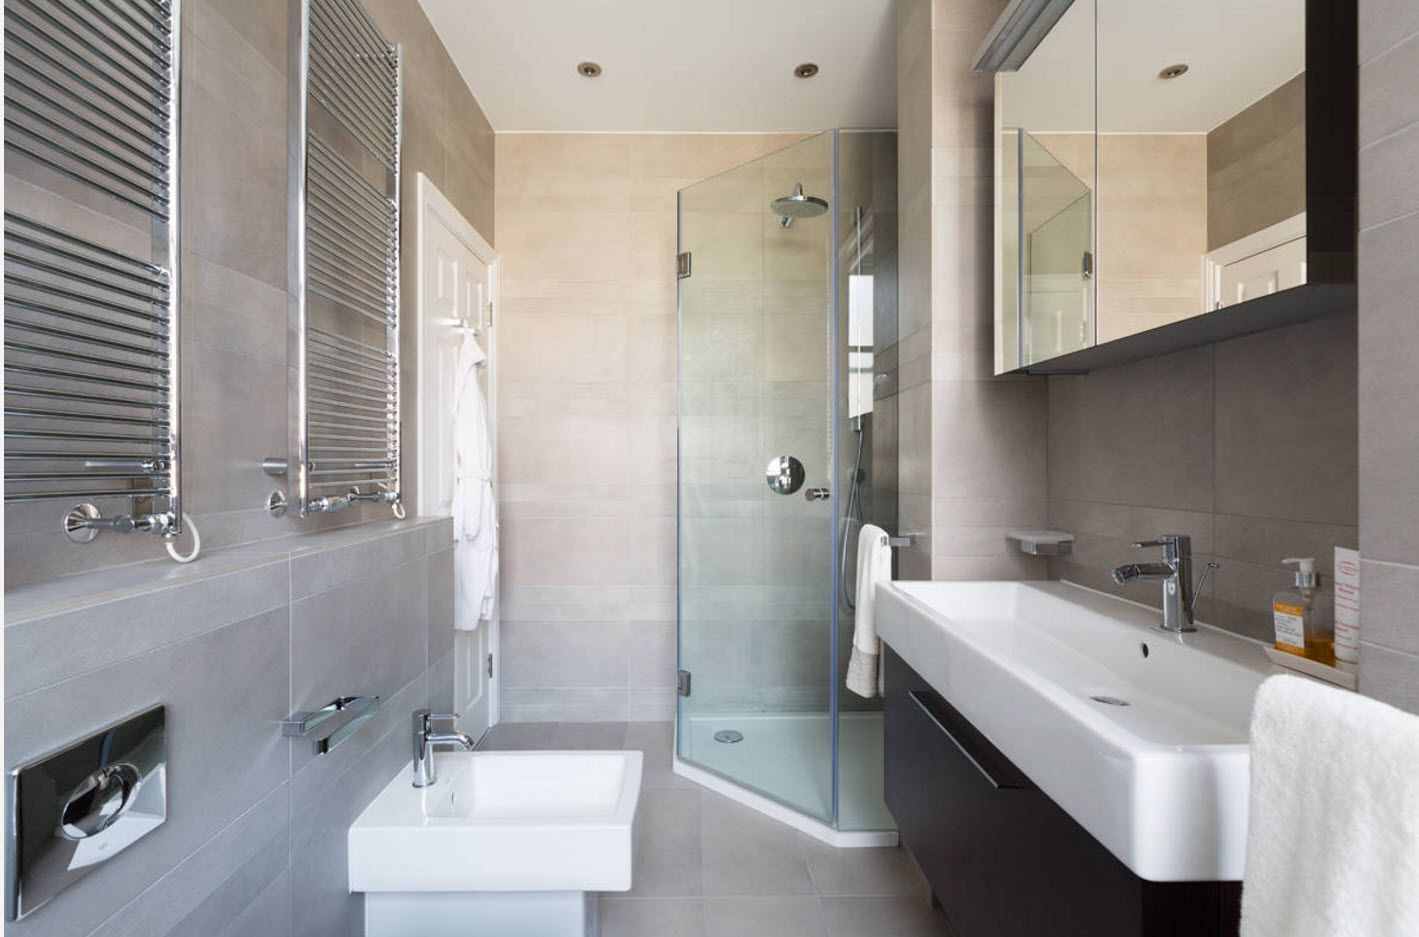 Modern contemporary style bathroom design solution for small space